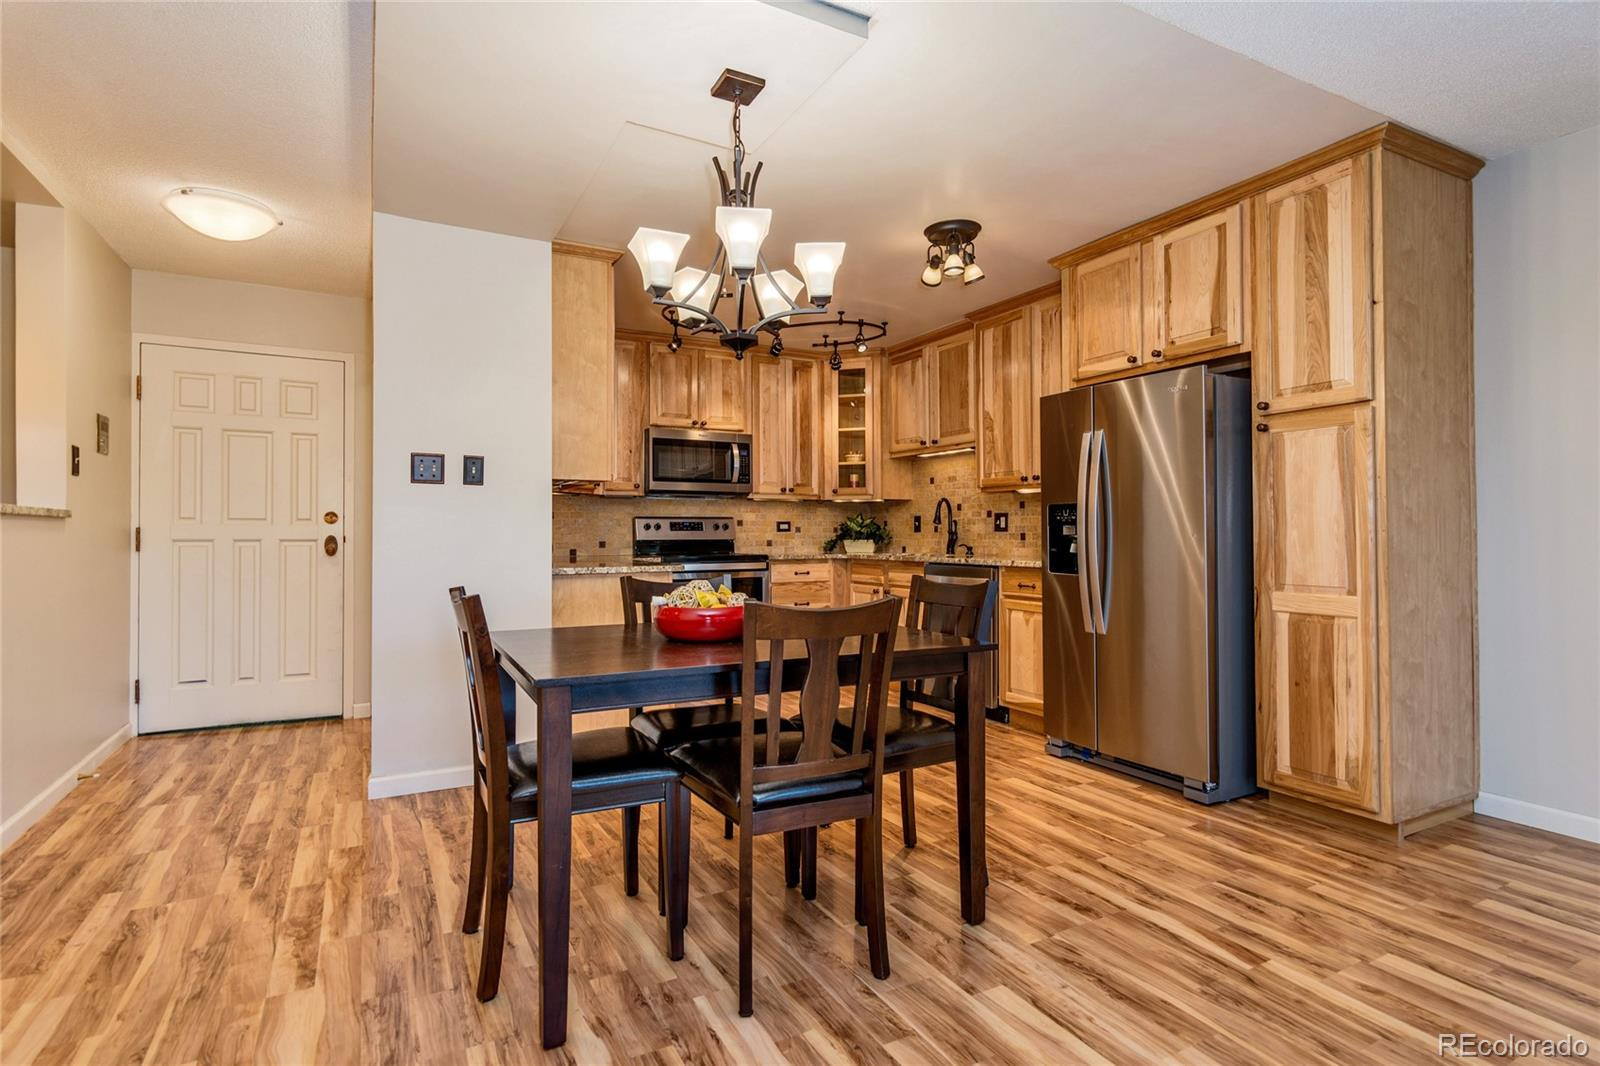 Rare opportunity= fully remodeled 1380 sf G floorplan in Windsor Gardens, only one available w/2 garages! *Tour Windsor Gardens Online: Community tour, explore amenities and features, check out examples of interior walking/narrated condo video tours, and more:  go to www.tourwindsorgardens.com * Great courtyard views! Building backs highline canal & walking trail. 2 bed/2 bath + den that has french doors; can be 3rd bedroom. Kitchen features hickory cabinets, granite slab counters, tile backsplash, updated fixtures, and all new stainless appliances. Bathrooms w/tile floors, newer vanities, granite tops, and fixtures. Awesome built-in office space + bonus utility closet. Wood flrs thru-out main living area. New paint. 3 wall a/c units- one is new with remote. Enclosed glass/screen lanai overlooking courtyard, 2 new vinyl slider doors included! Bonus storage room on same floor. Colorado's largest active adult living community, age 55+. FHA/VA approved. HOA Dues include annual property taxes! And also heat, water, sewer, trash, 24-hour patrolling community responder, club house w/indoor & outdoor pool, hot tub, sauna, activities...9 hole par 3 golf course open to the public.